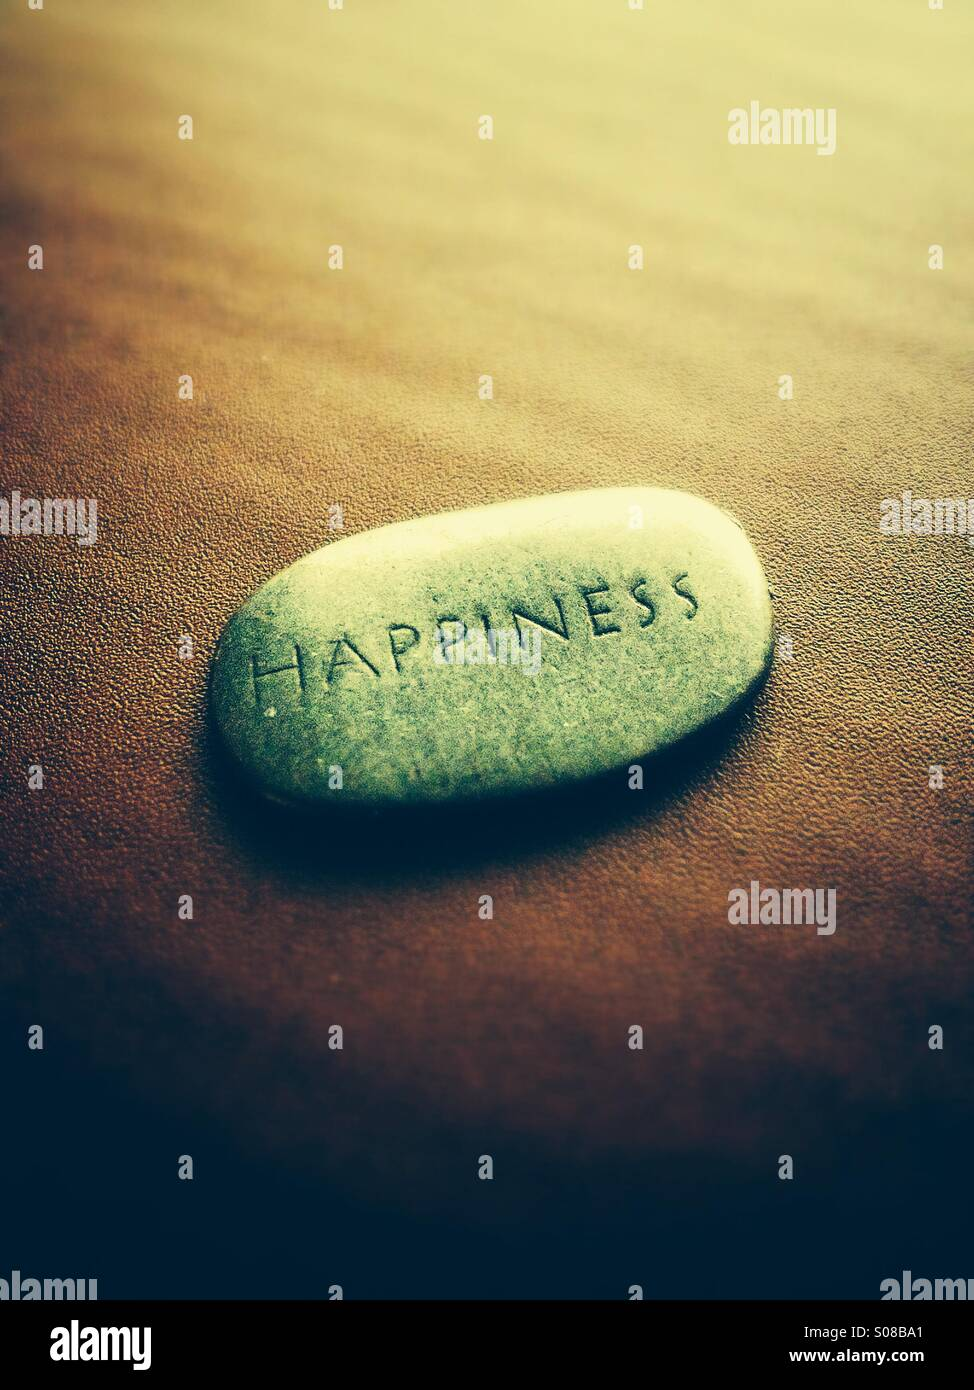 The word happiness carved onto a stone - Stock Image